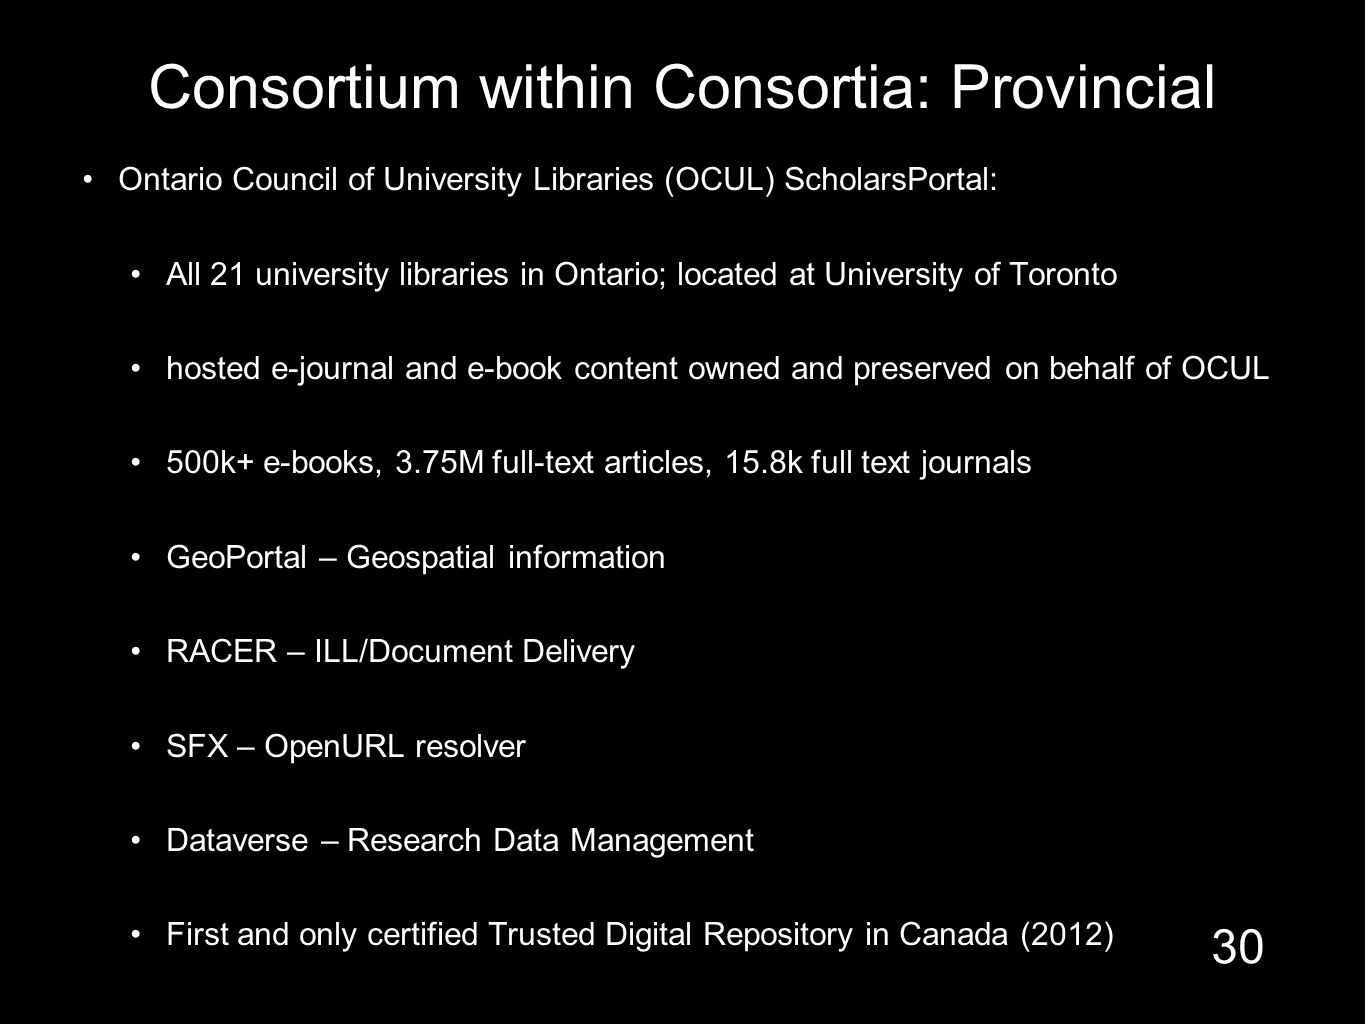 Consortium within Consortia: Provincial Ontario Council of University Libraries (OCUL) ScholarsPortal: All 21 university libraries in Ontario; located at University of Toronto hosted e-journal and e-book content owned and preserved on behalf of OCUL 500k+ e-books, 3.75M full-text articles, 15.8k full text journals GeoPortal – Geospatial information RACER – ILL/Document Delivery SFX – OpenURL resolver Dataverse – Research Data Management First and only certified Trusted Digital Repository in Canada (2012) 30